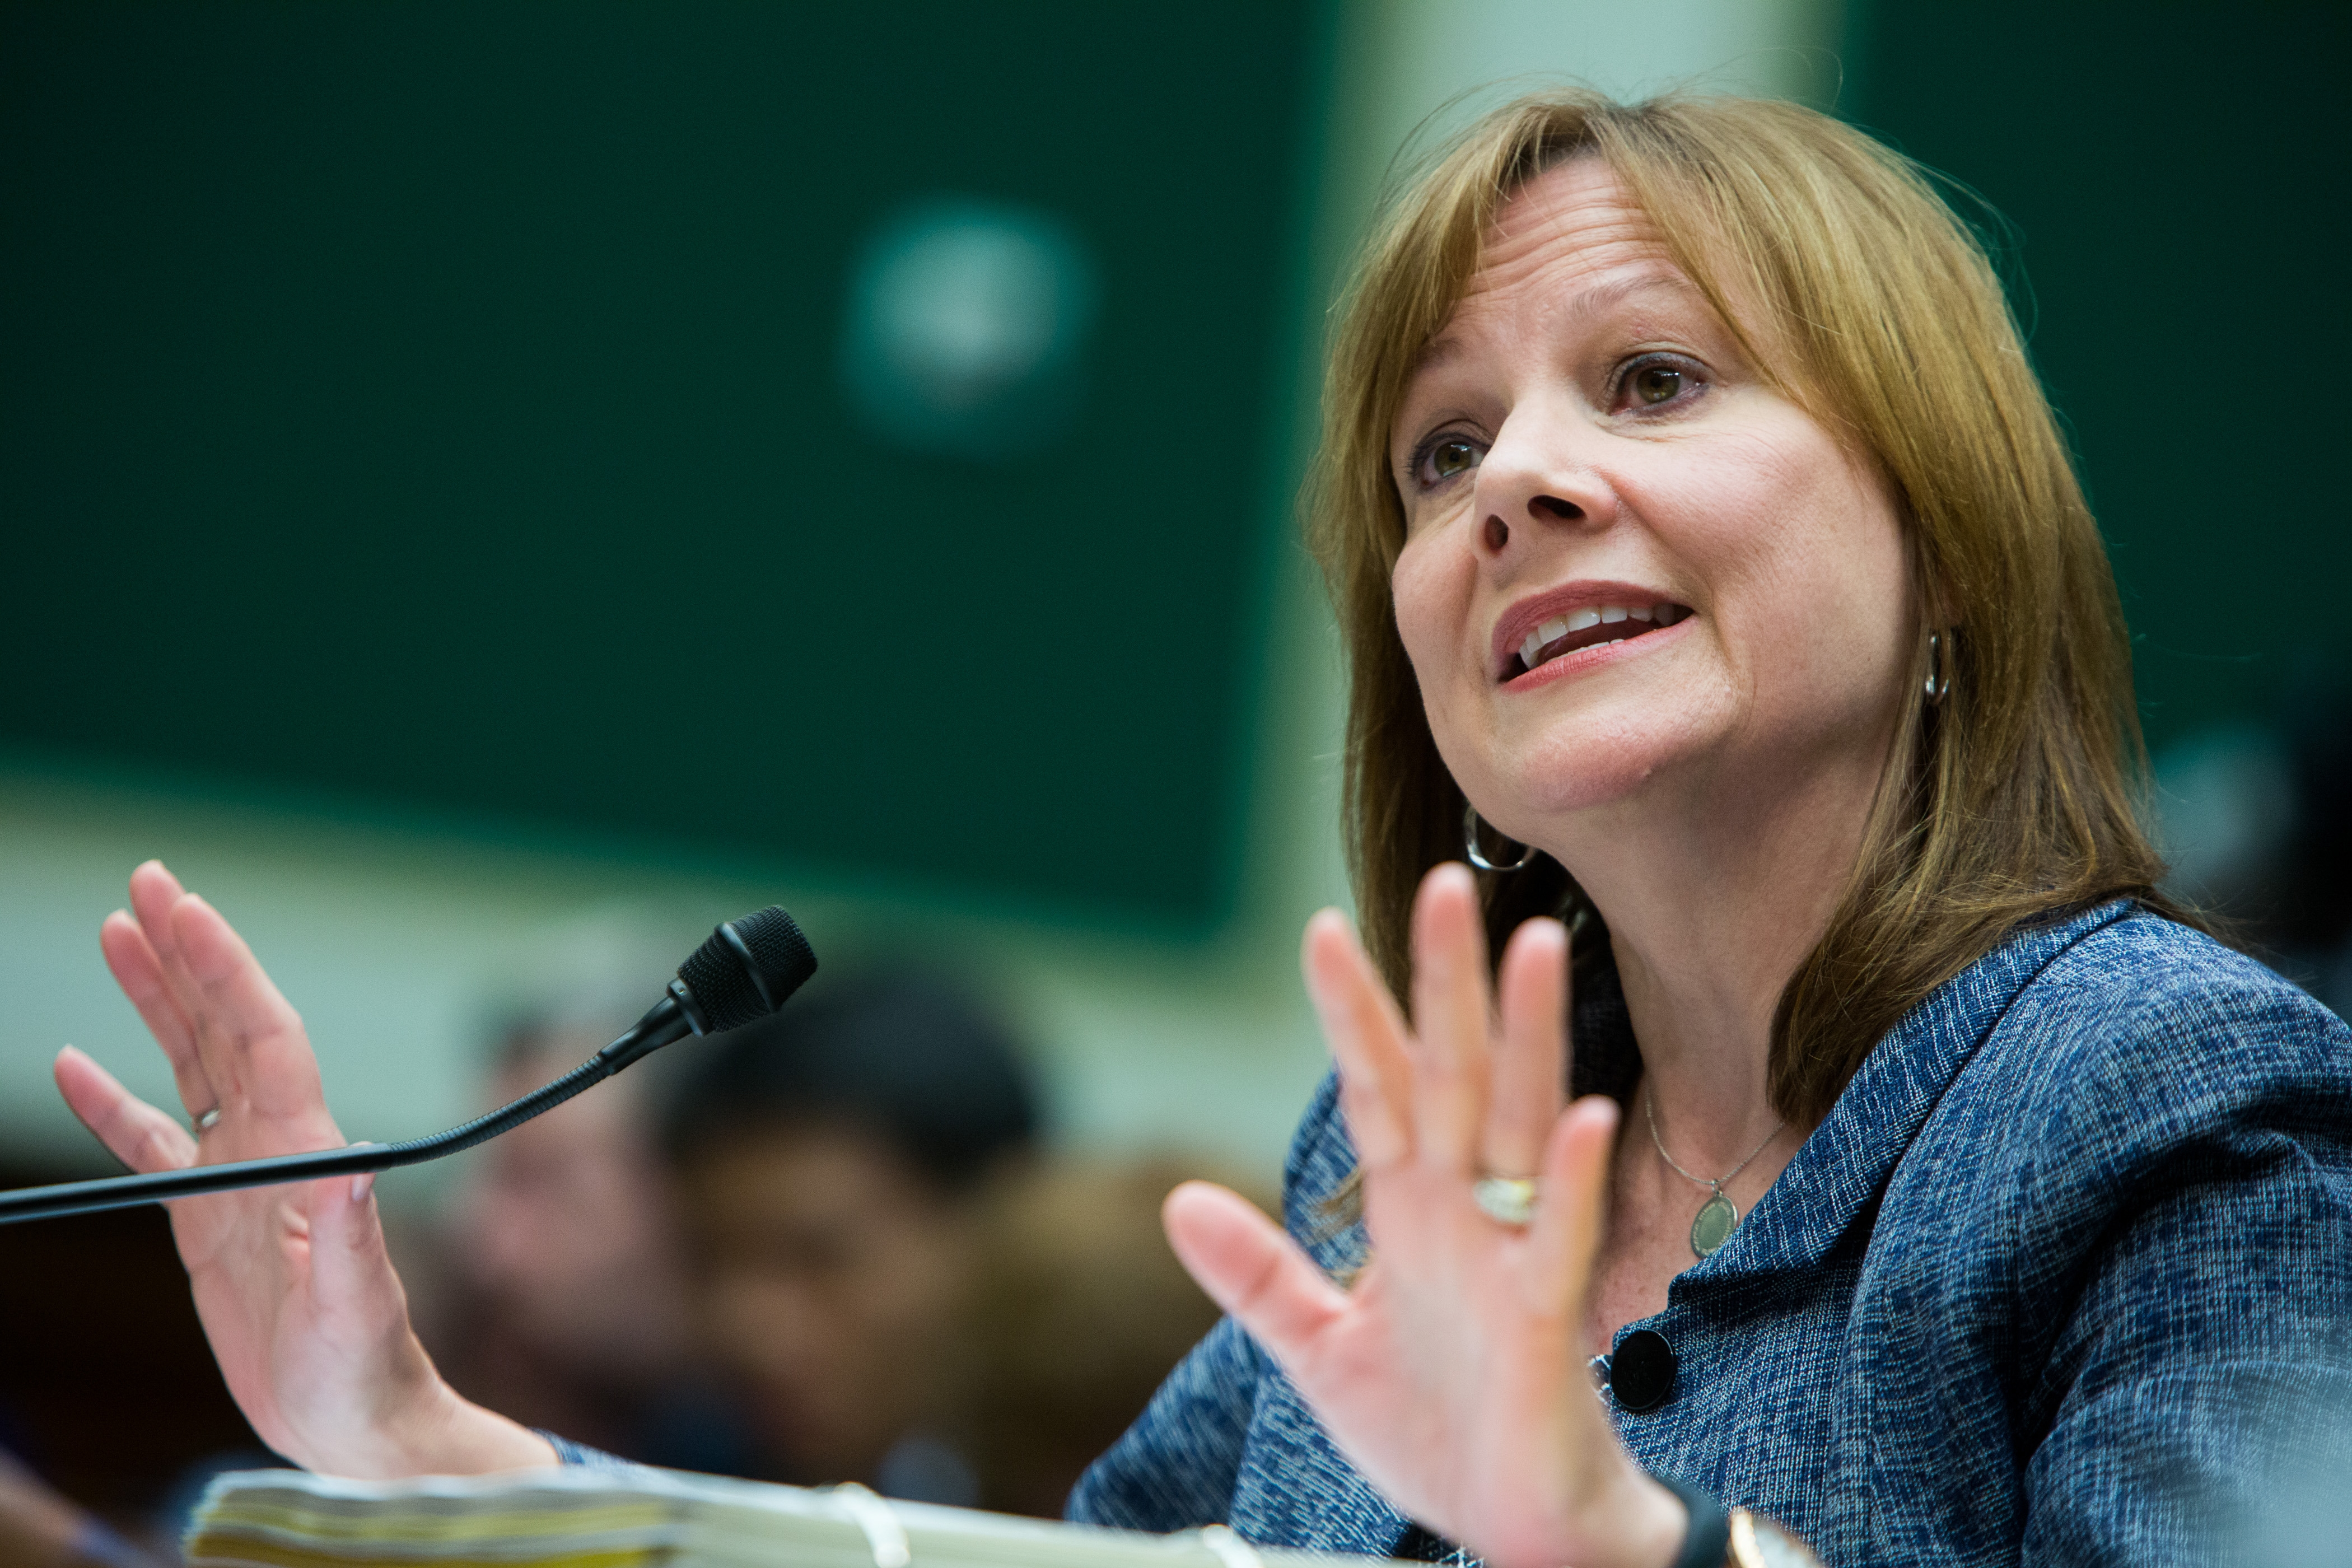 General Motors CEO Mary Barra said the internal investigation as to why GM repeatedly failed to fix faulty ignition switches is ongoing.